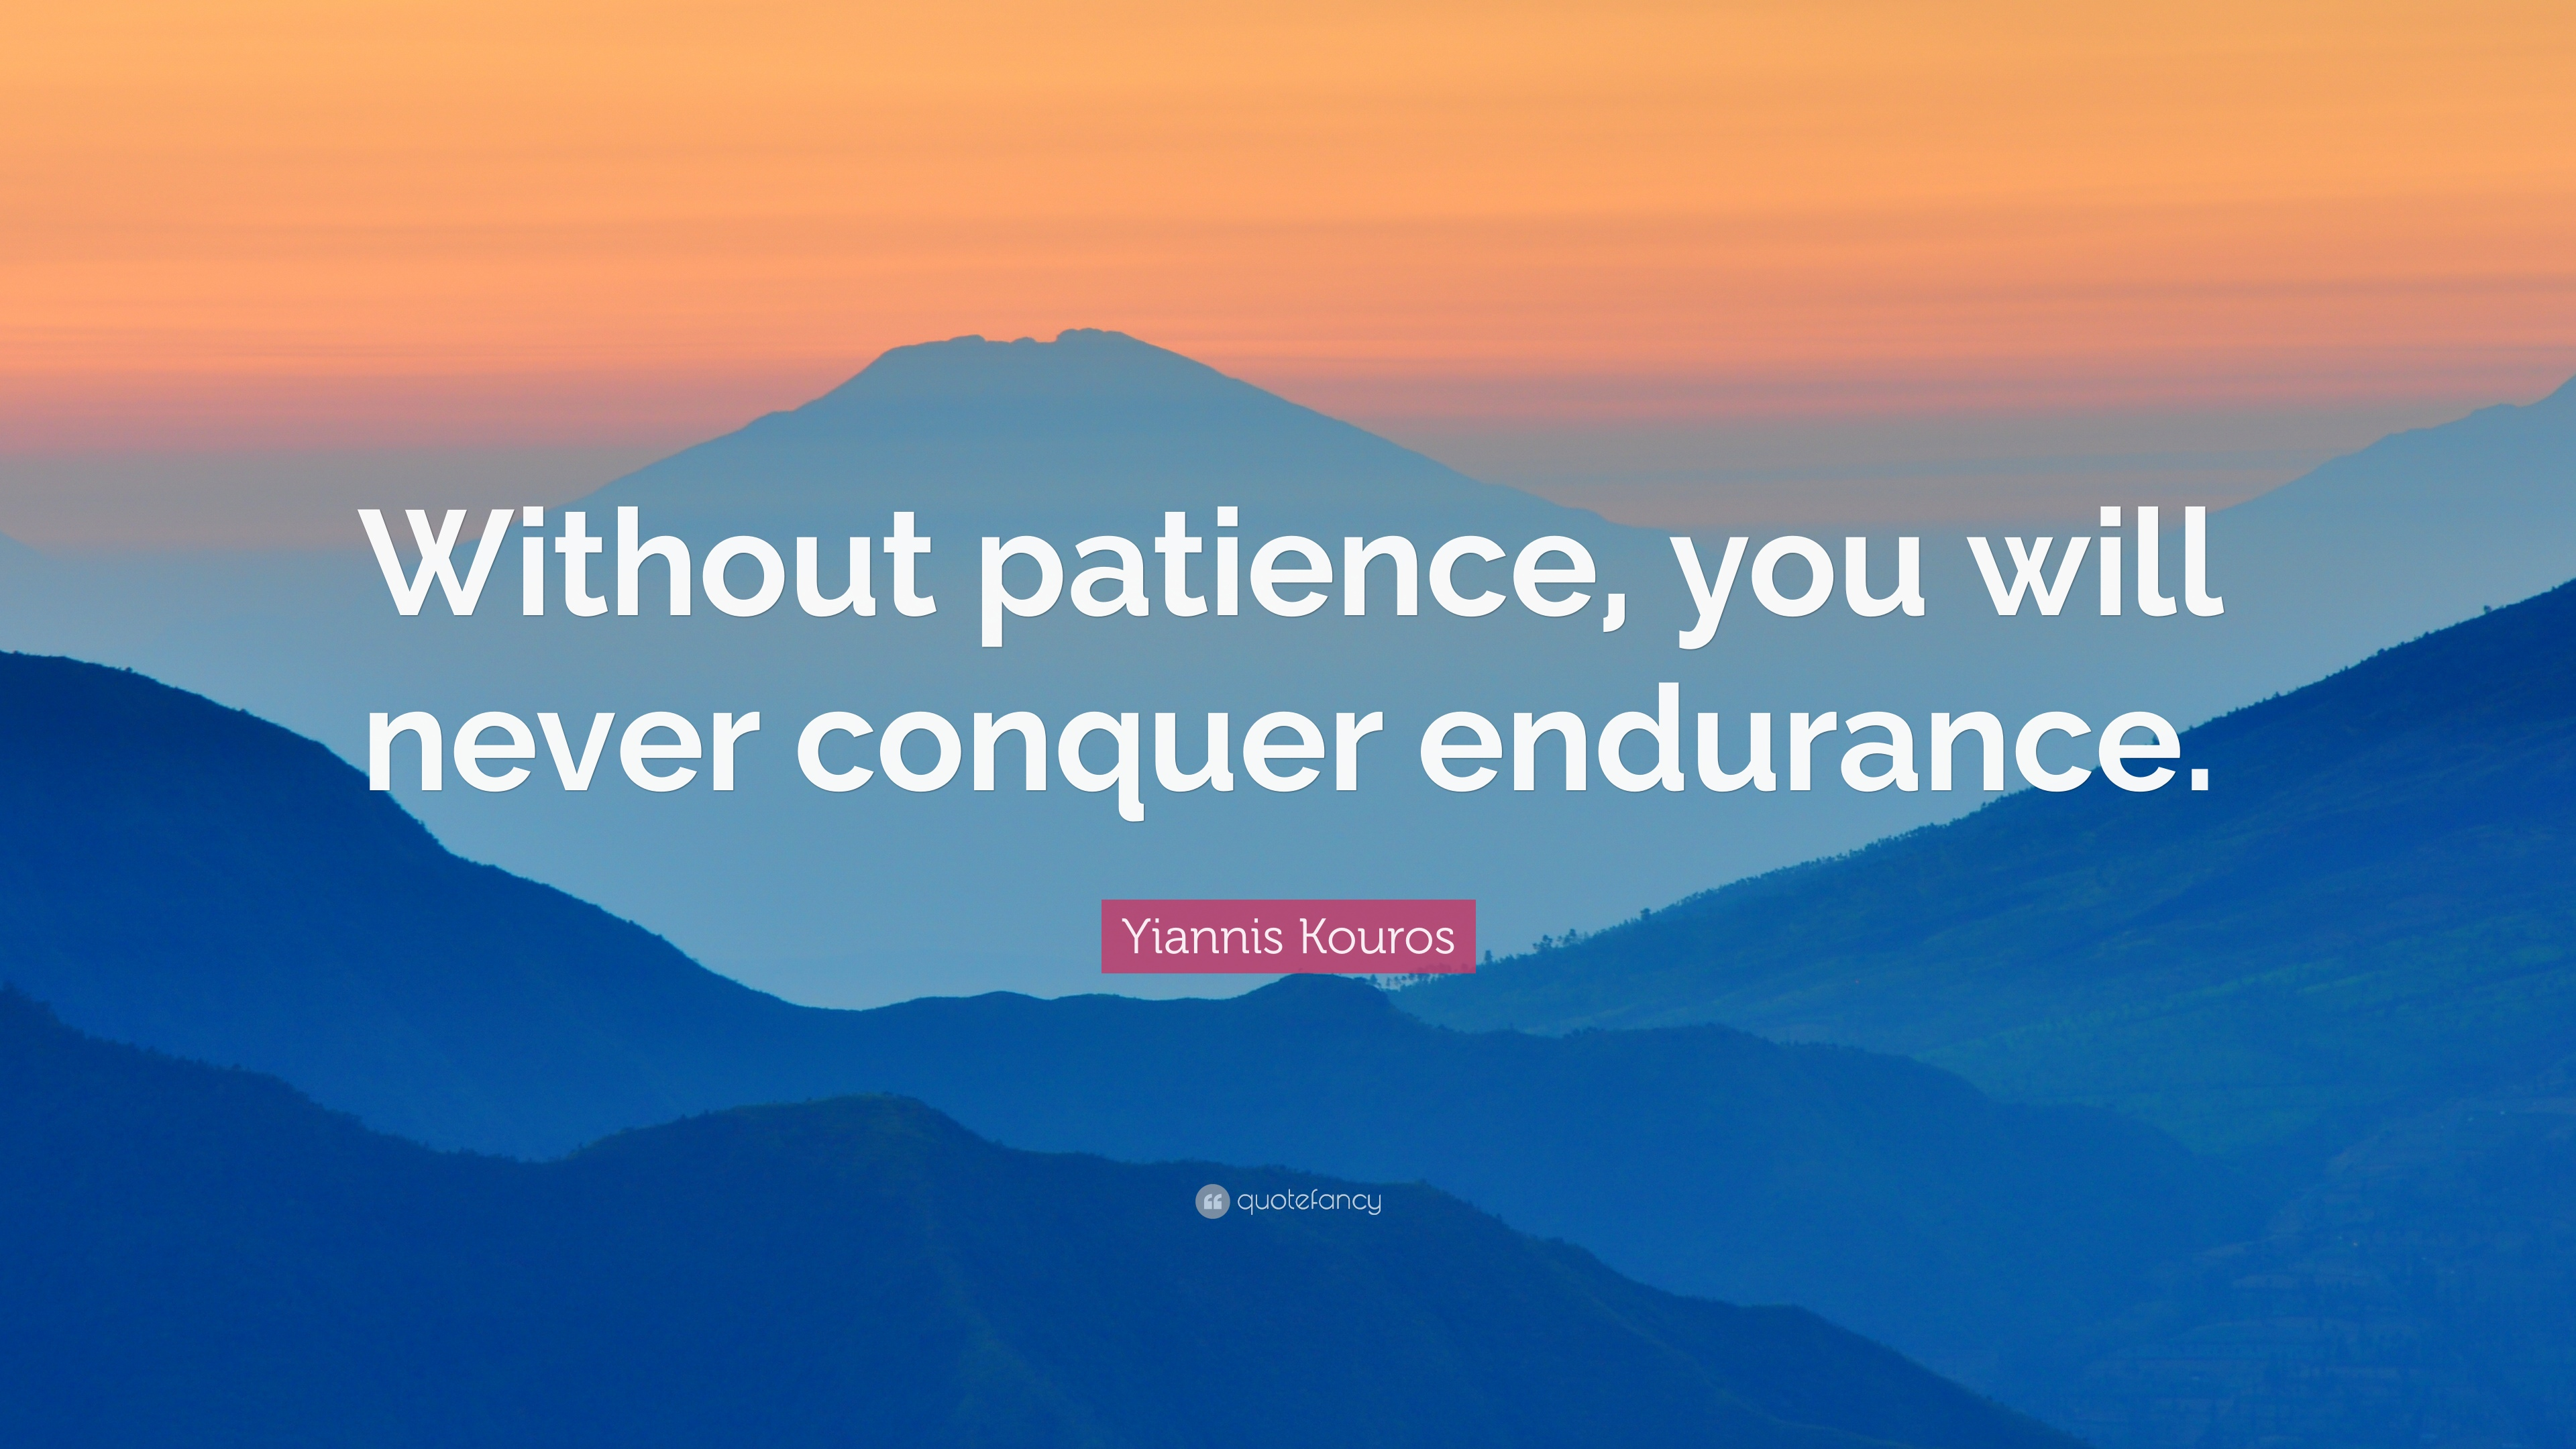 Endurance Quotes Yiannis Kouros Quotes 5 Wallpapers  Quotefancy